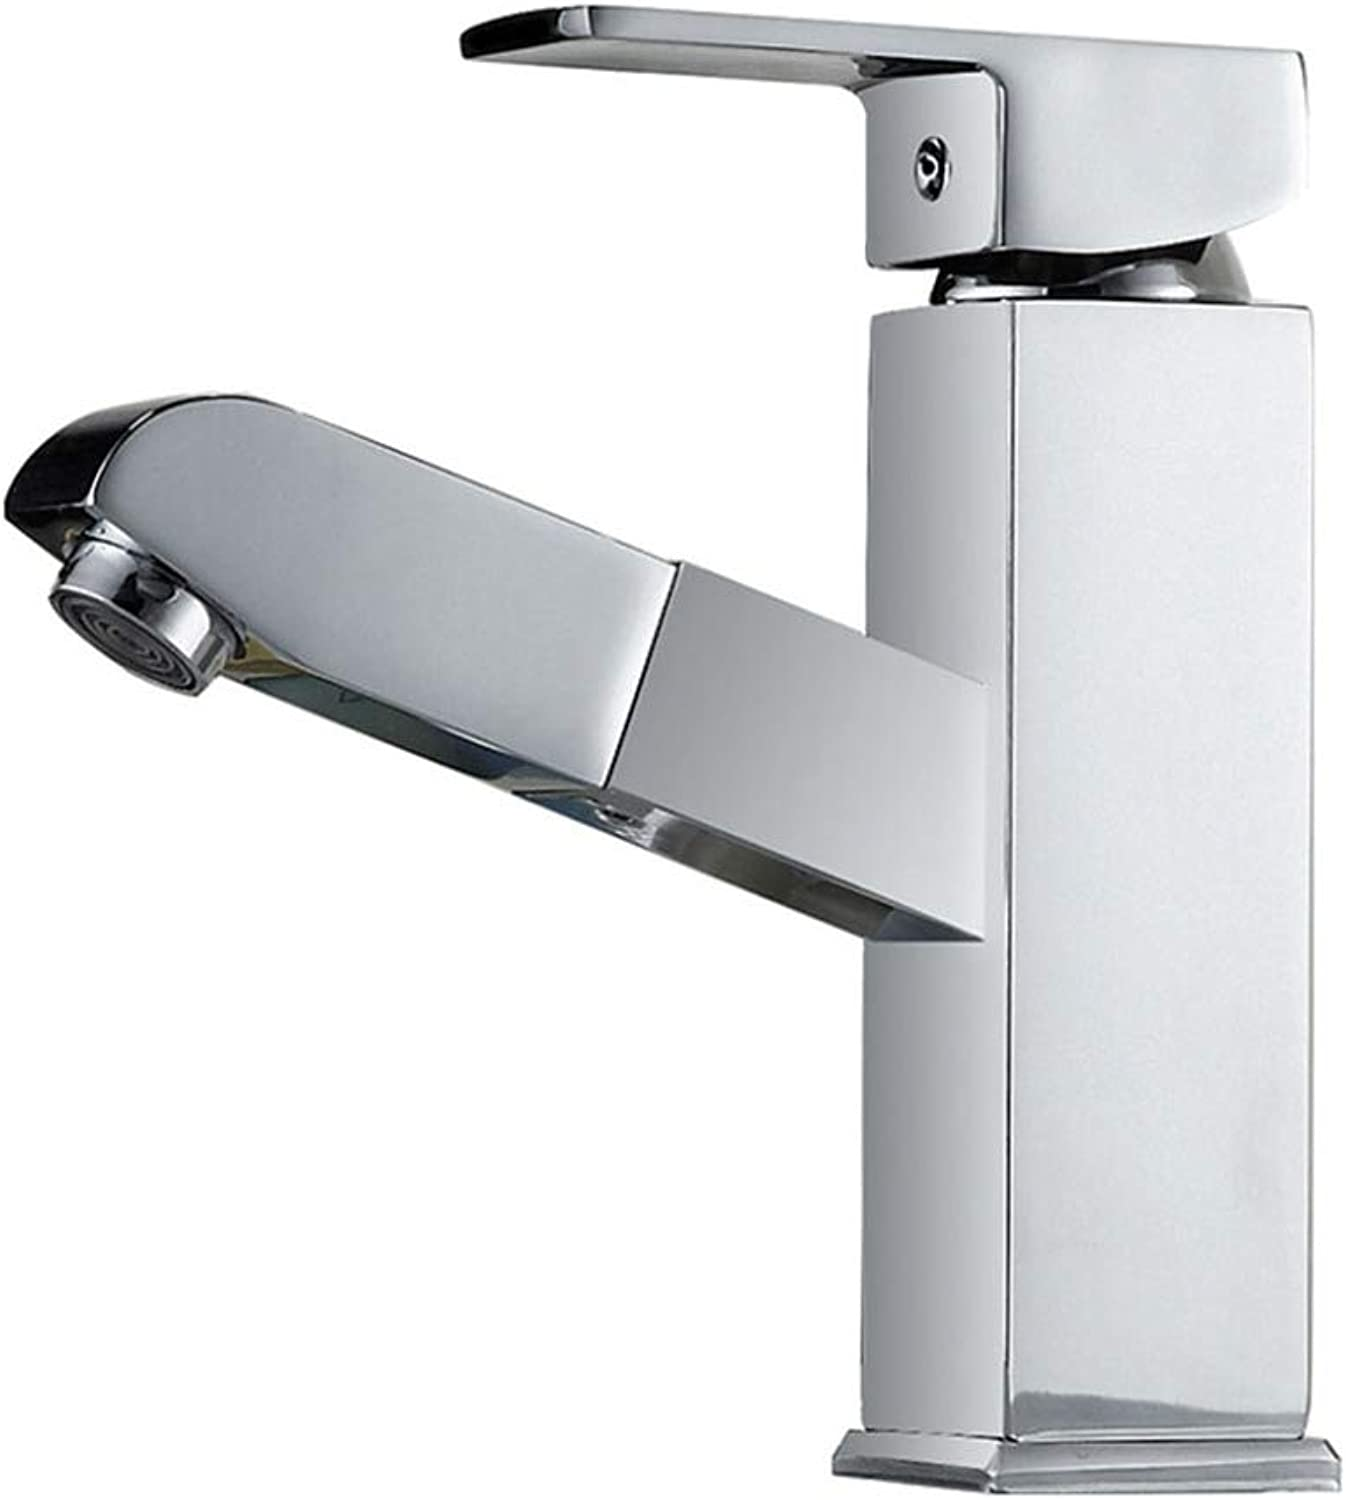 Bathroom Faucet, All Copper Plated Chrome Bathroom Vanity Pull-out Faucet, Hot And Cold Water Mixing Basin